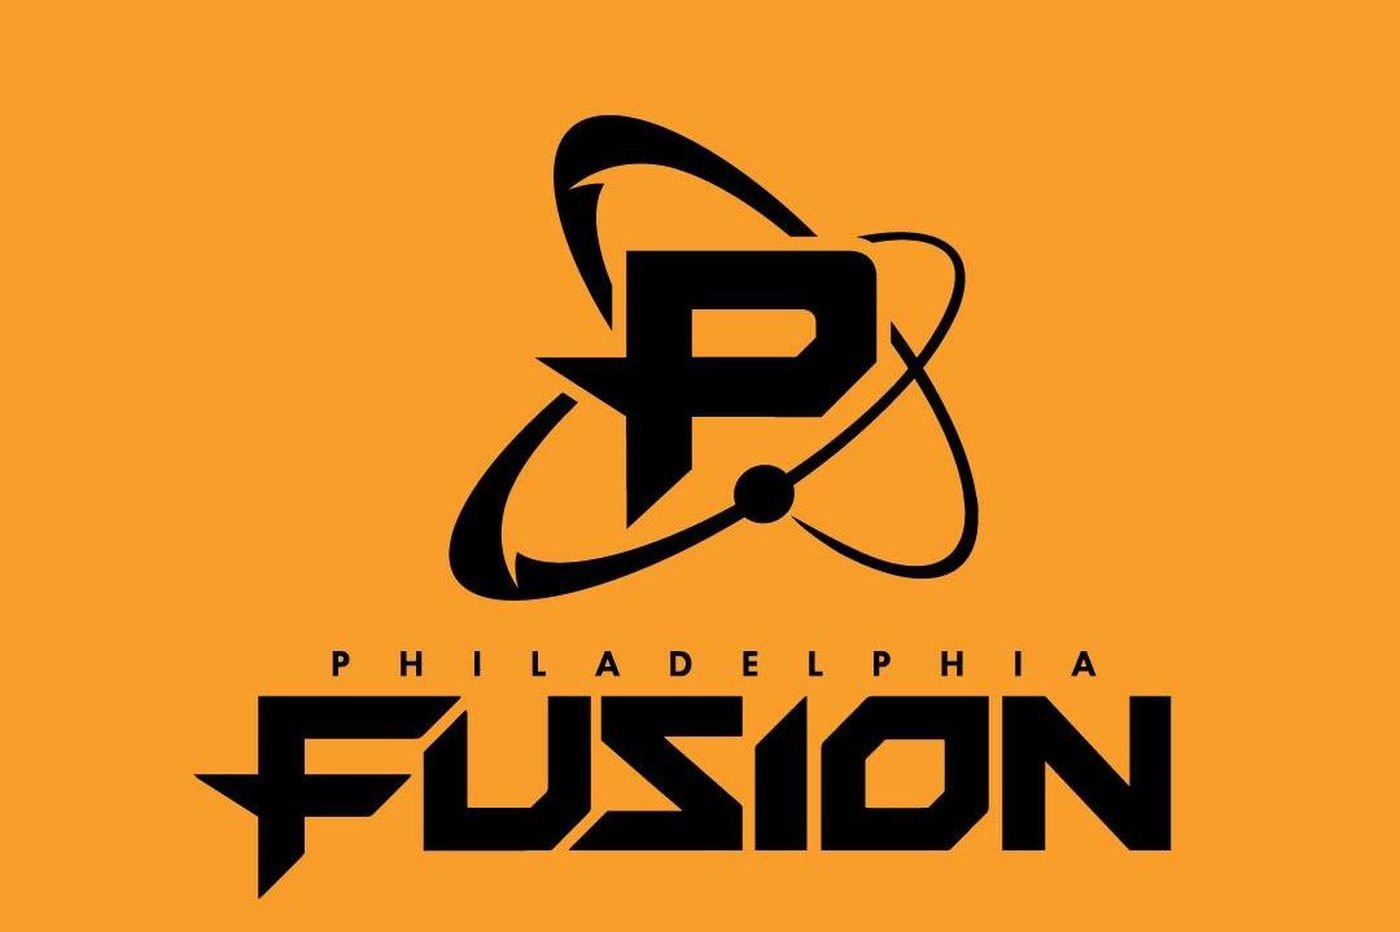 Comcast names new egames team Fusion, signs foreign gamers to play Overwatch